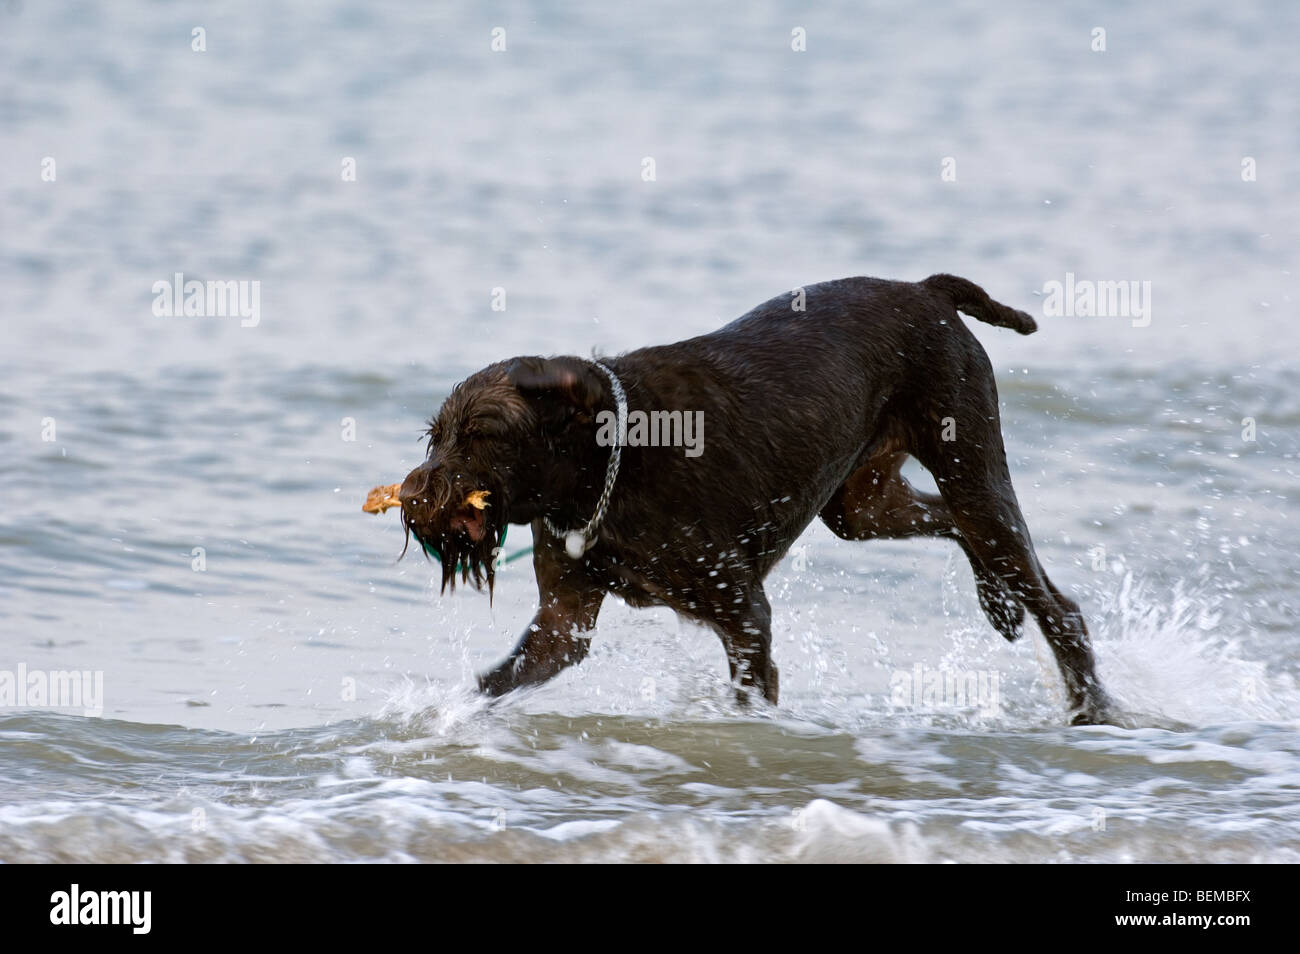 German Wirehaired Pointer Dog In Stock Photos & German Wirehaired ...